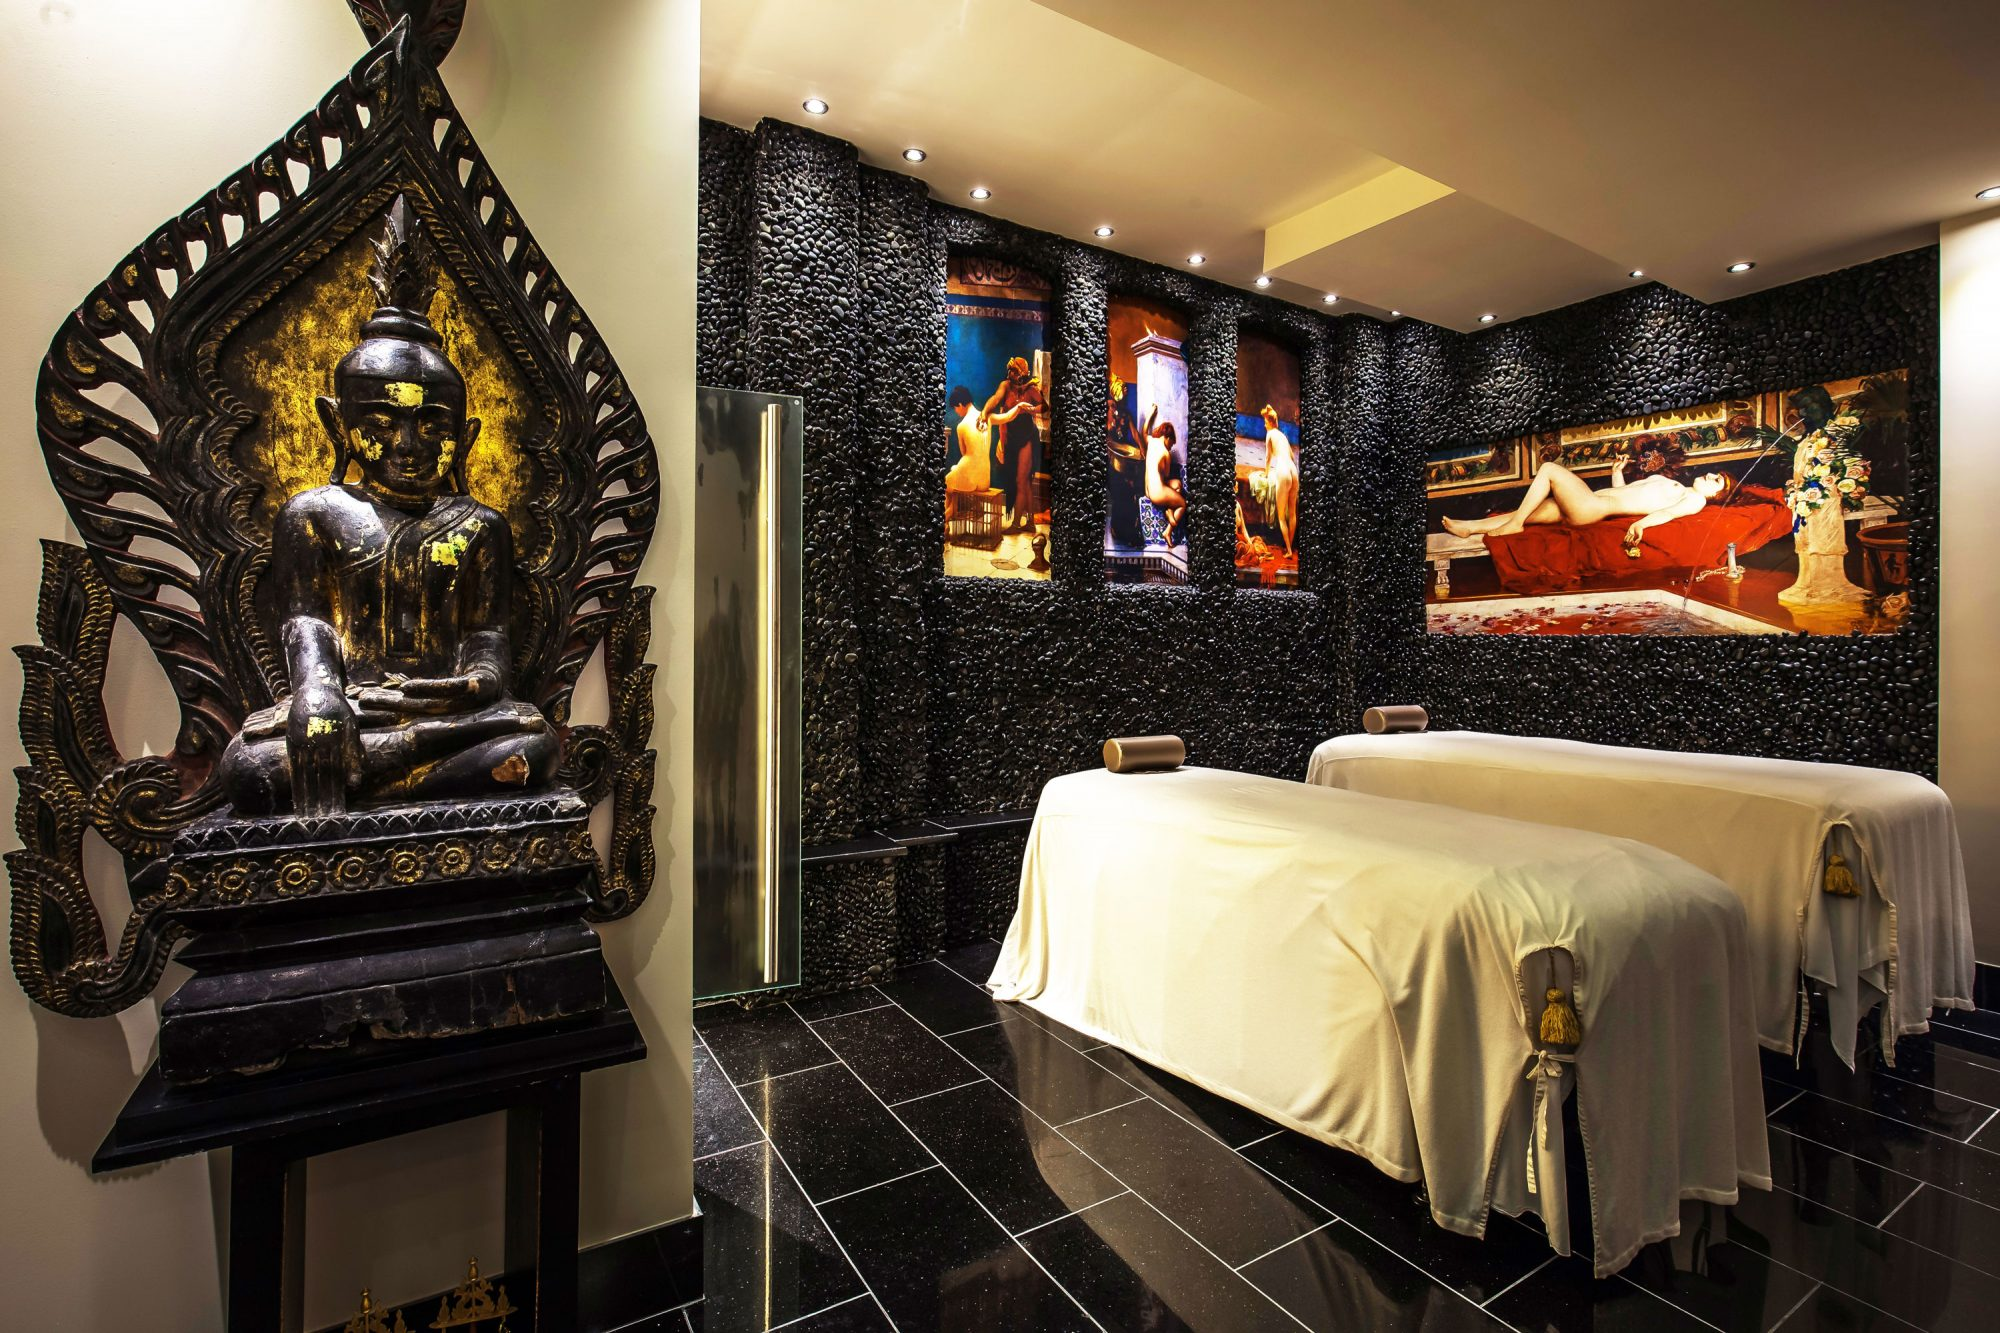 thai-square-spa-london-review-man-for-himself-12